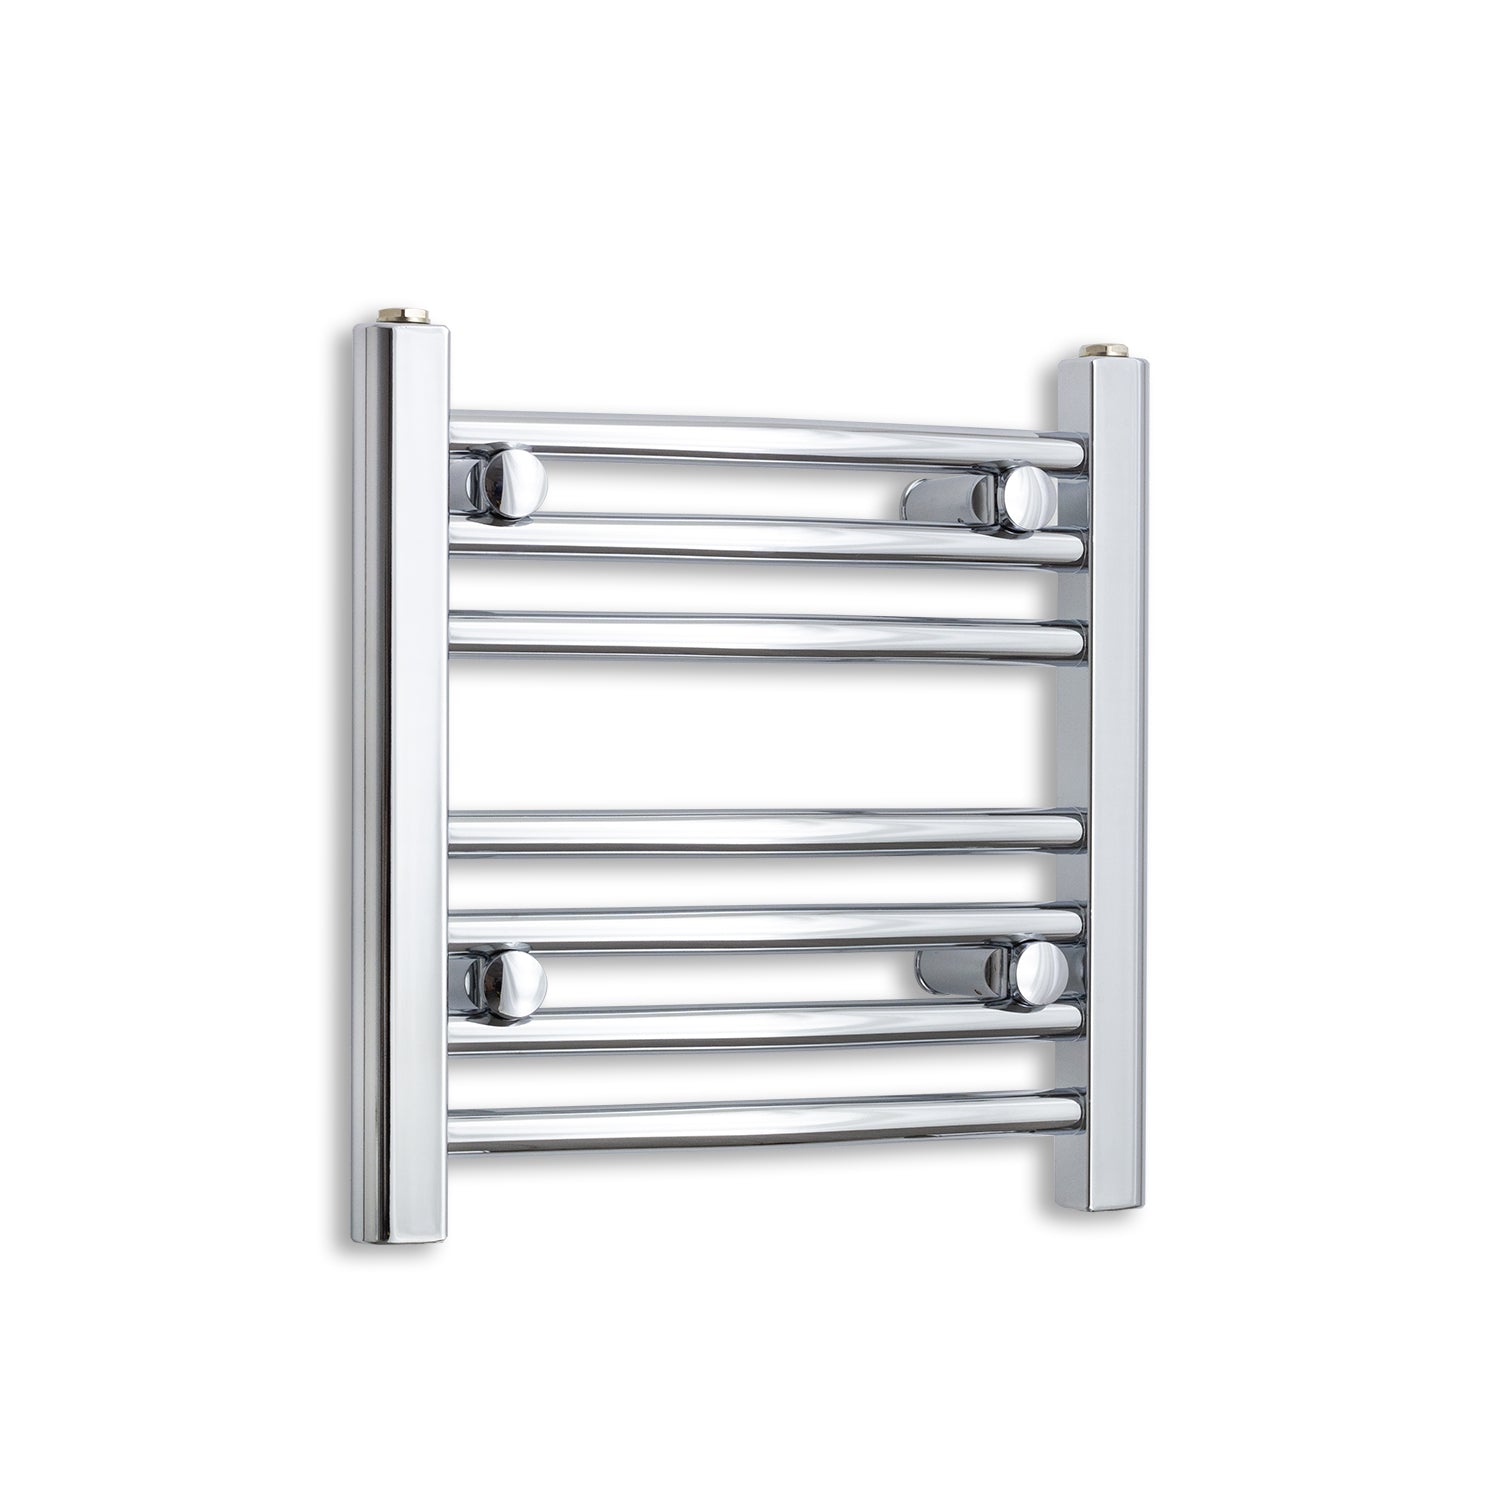 500mm Wide 400mm High Flat Chrome Heated Towel Rail Radiator HTR,Towel Rail Only